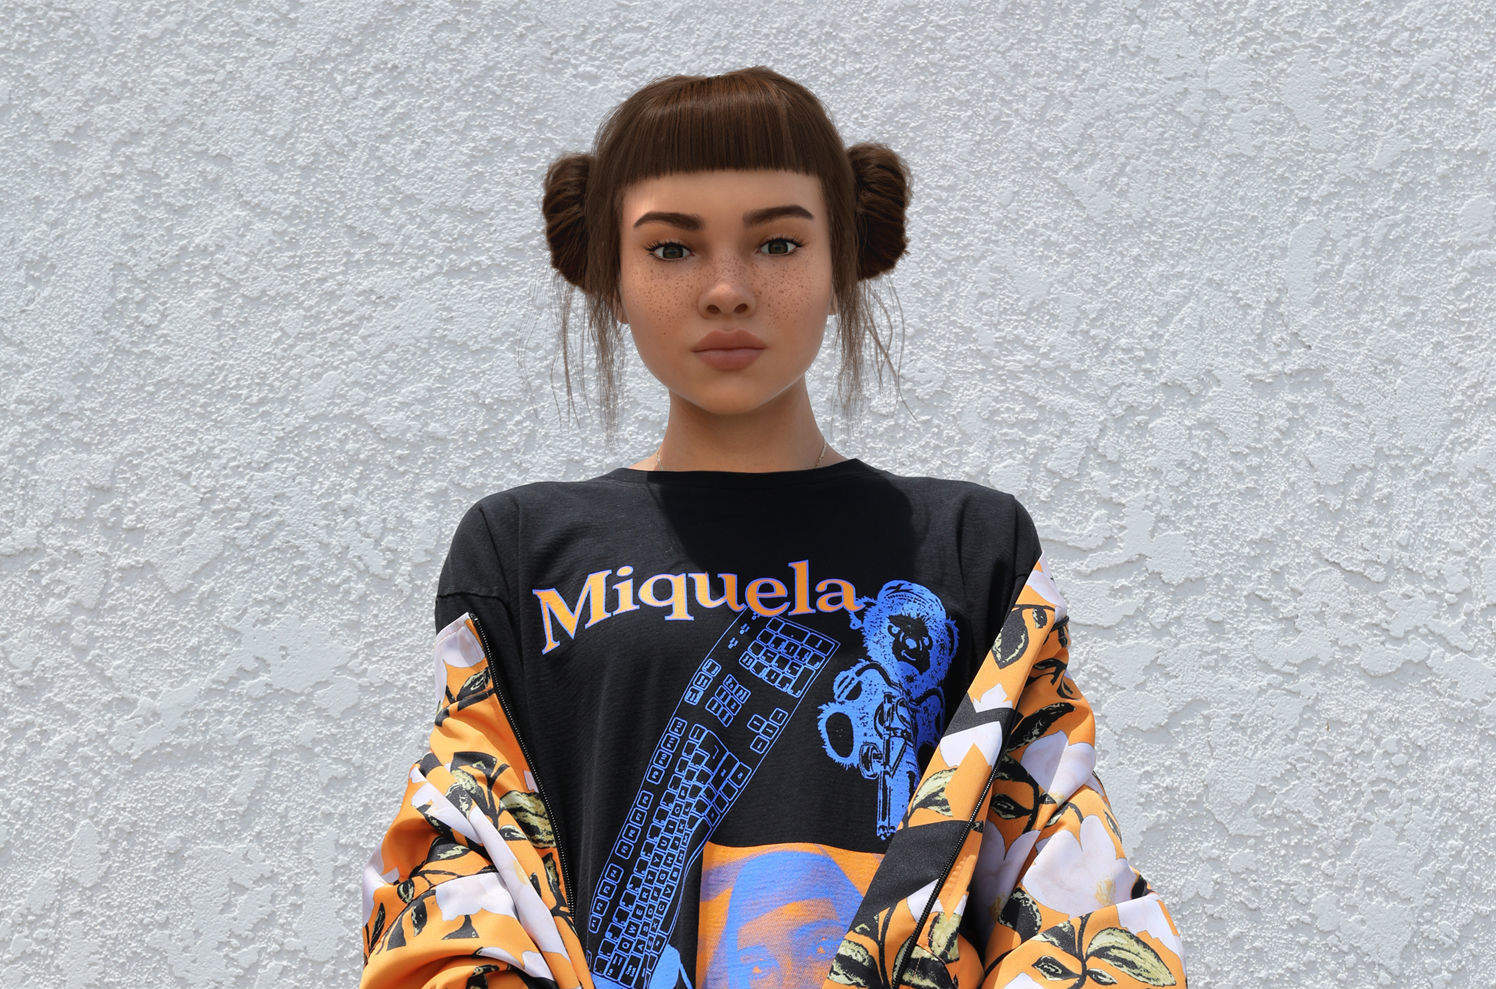 Virtual influencers: Lil Miquela and Shudu Gram are the vanguard of online marketing's future